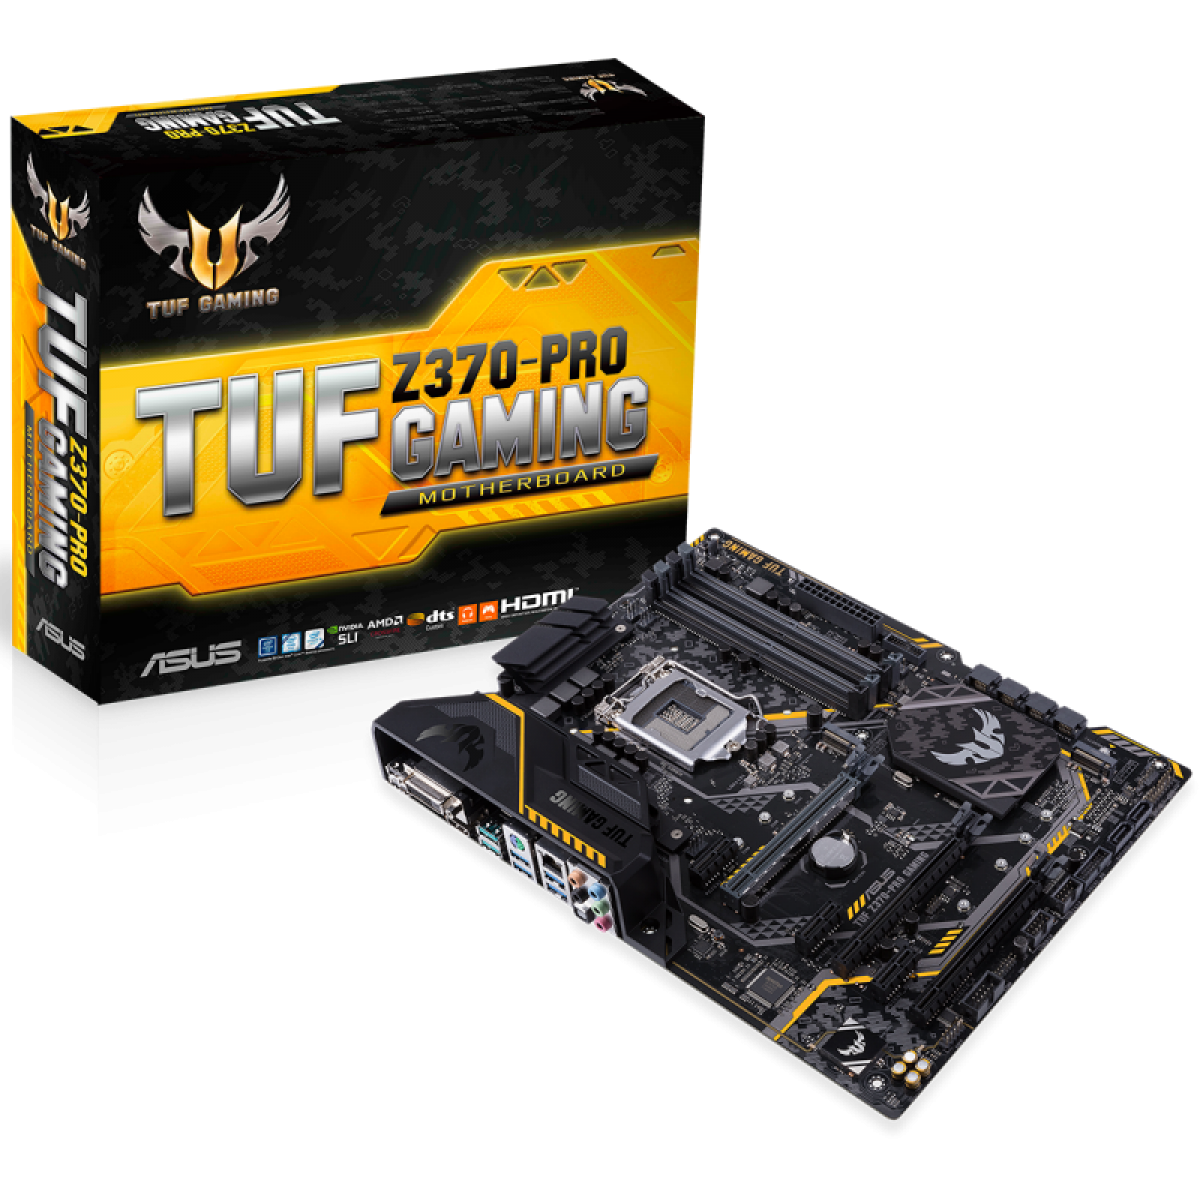 Placa Mãe Asus TUF Z370-PRO GAMING, Chipset Z370, Intel LGA 1151, ATX, DDR4